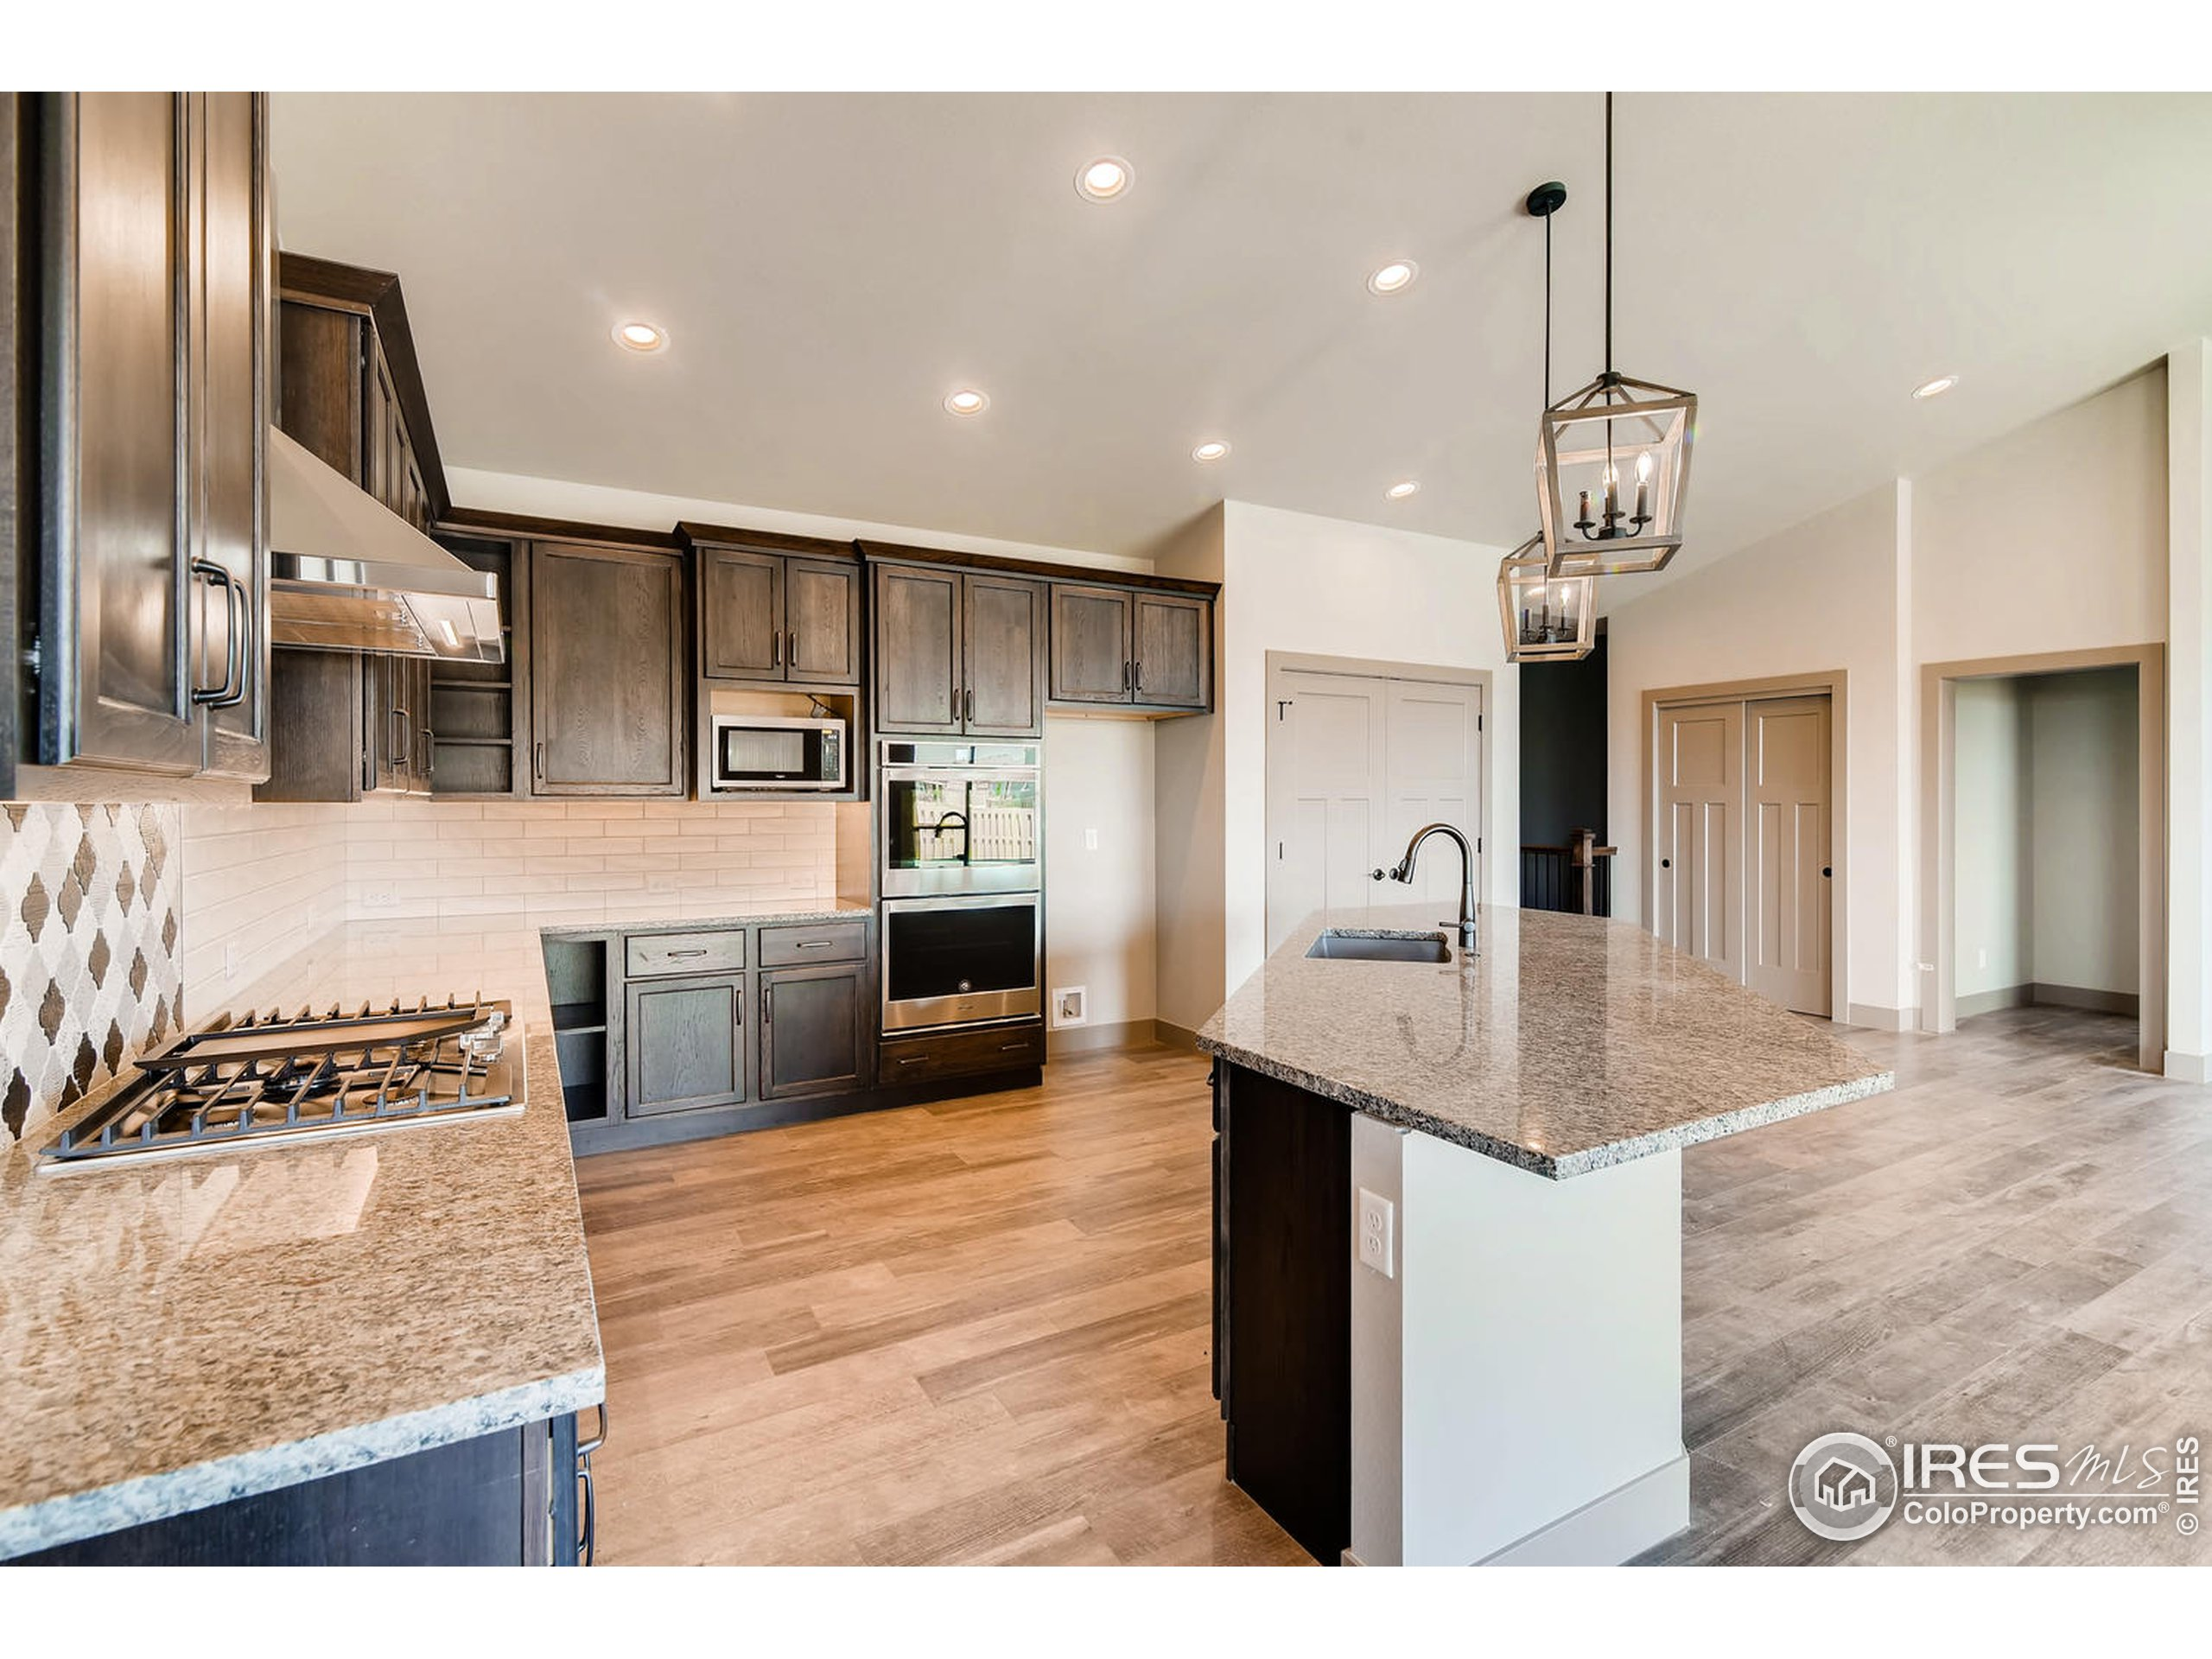 Double Ovens and Large Pantry.